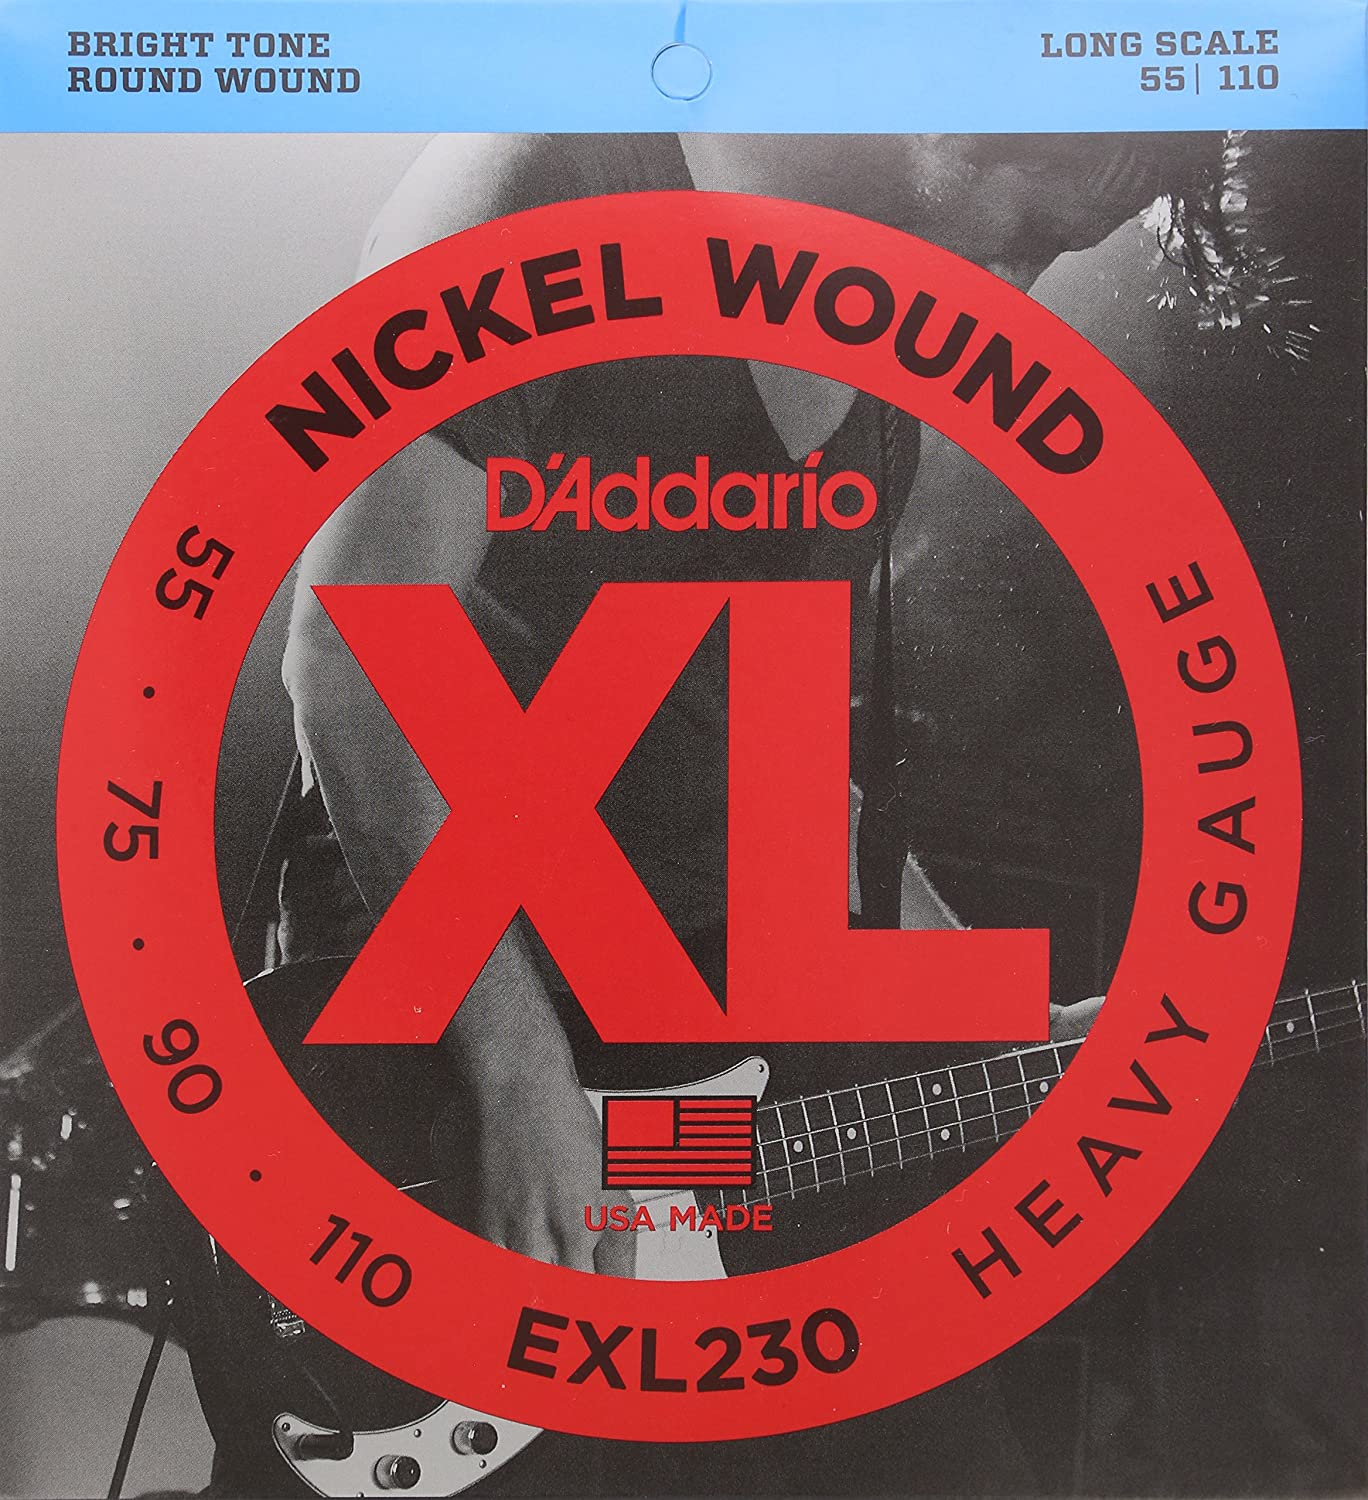 D'Addario EXL170 XL Nickel Wound Regular Light  (.045-.100) Electric Bass Guitar Strings D' Addario Ltd Musical Instrumenmts Portable_Electronics daddario dadadrio diadrio coated ernie ball rotosound elixir fender elites